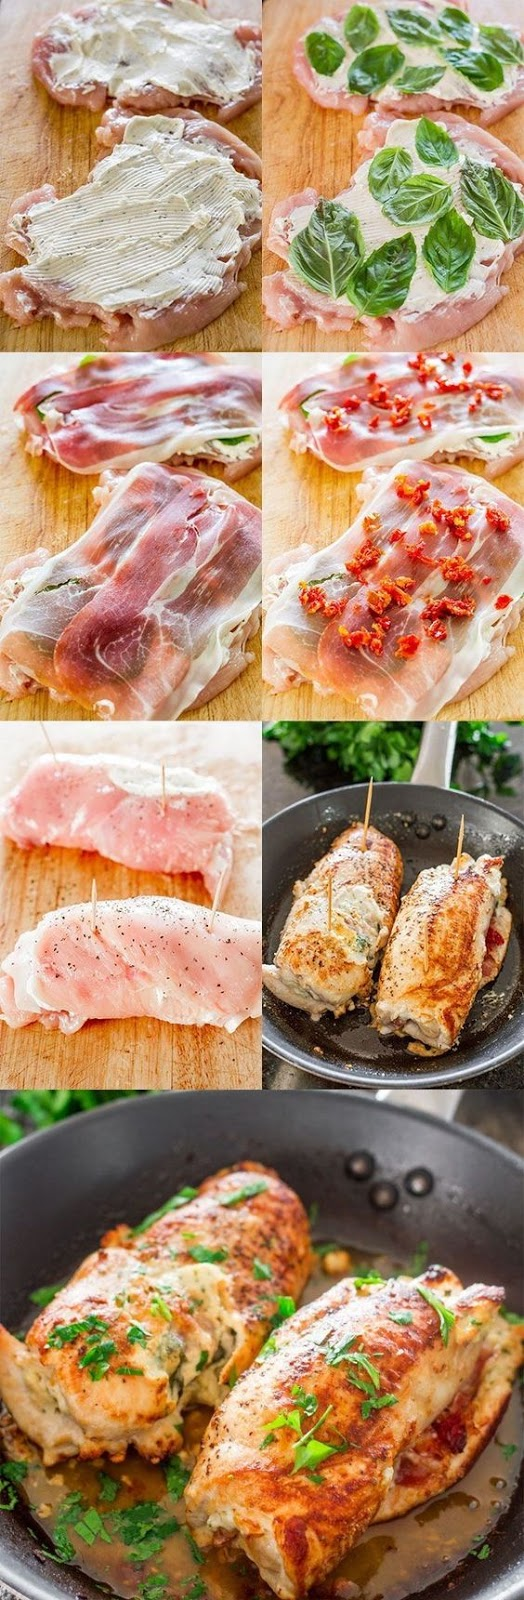 Cheese and Prosciutto Stuffed Chicken Breasts